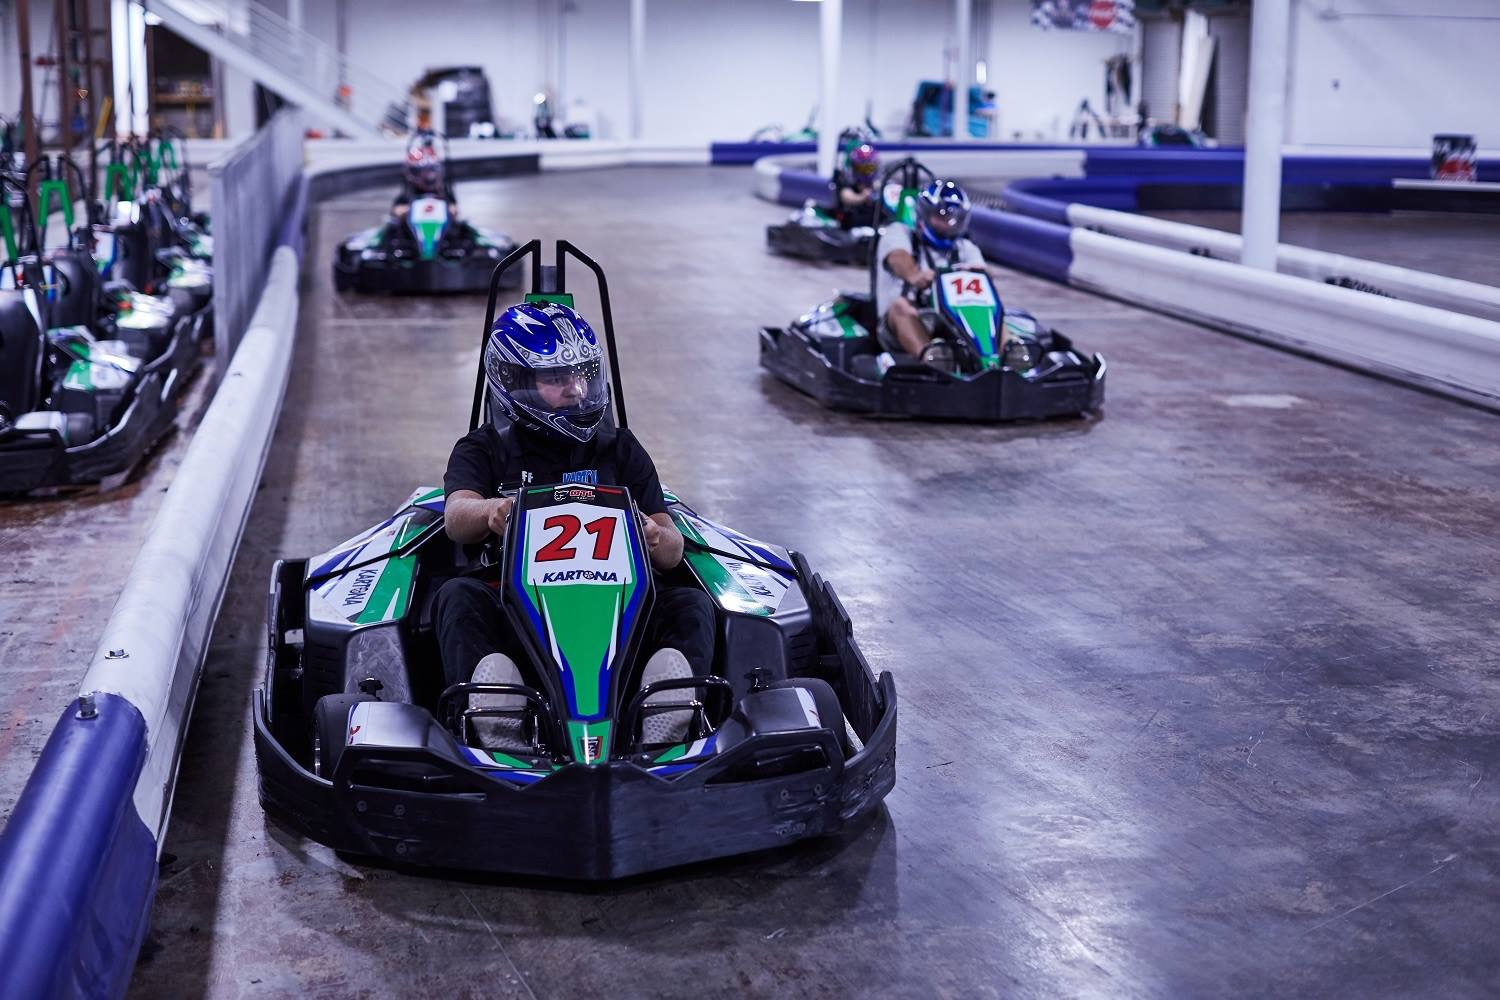 Go Kart racing is fun for everyone.  Kartona is indoors and there are many other outdoor tracks in PCB.